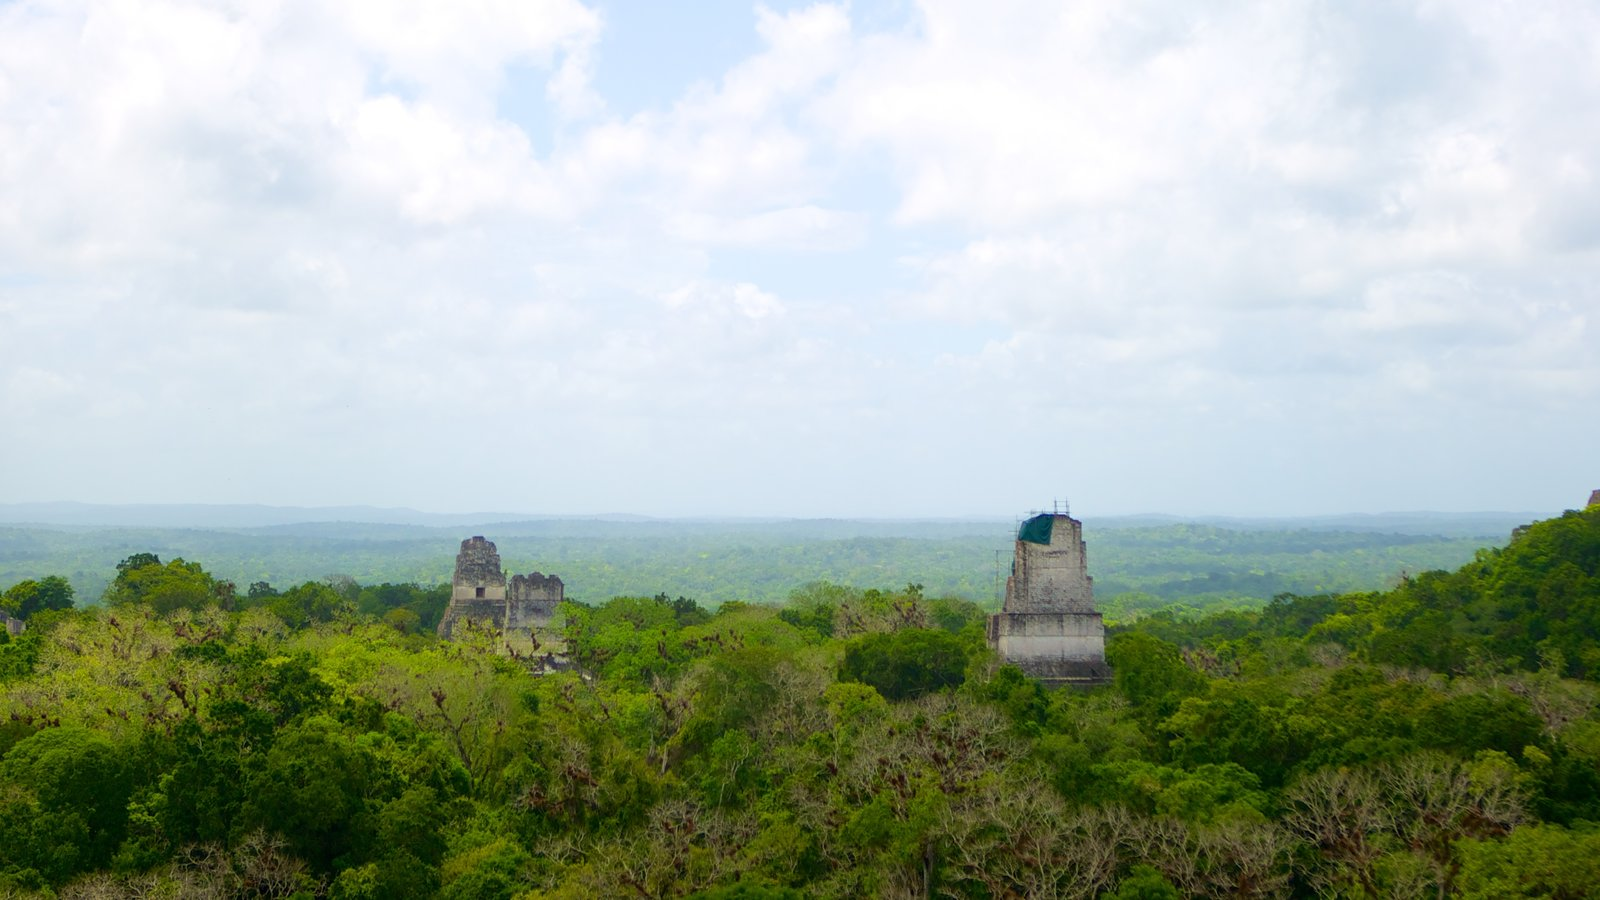 Tikal which includes forests and landscape views